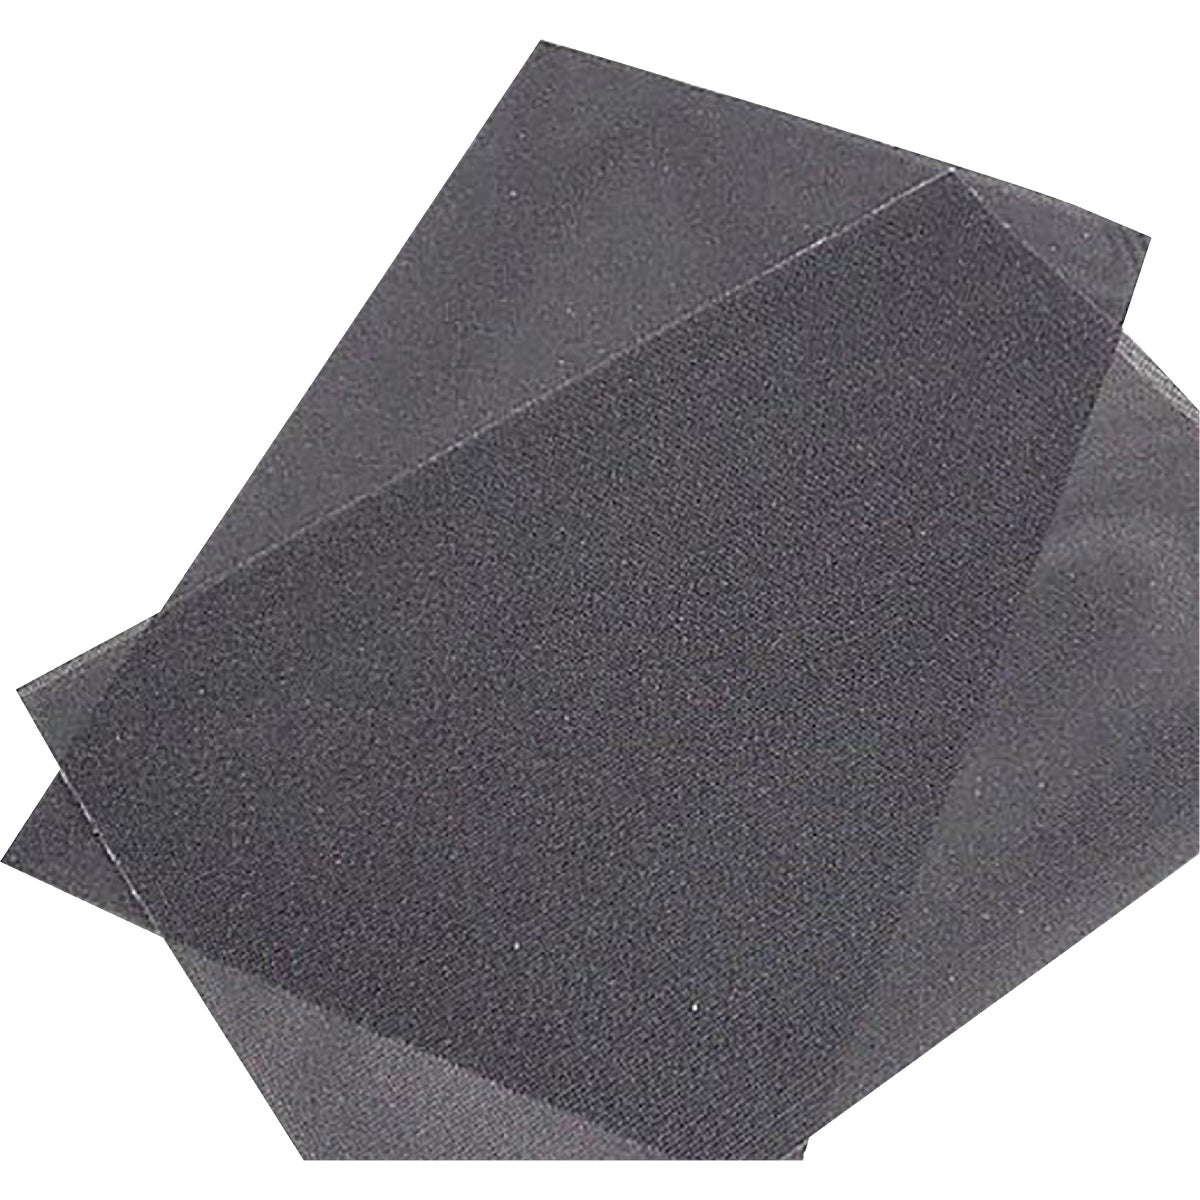 12X18 120G SANDNG SCREEN - 414-824496 by Virginia Abrasives